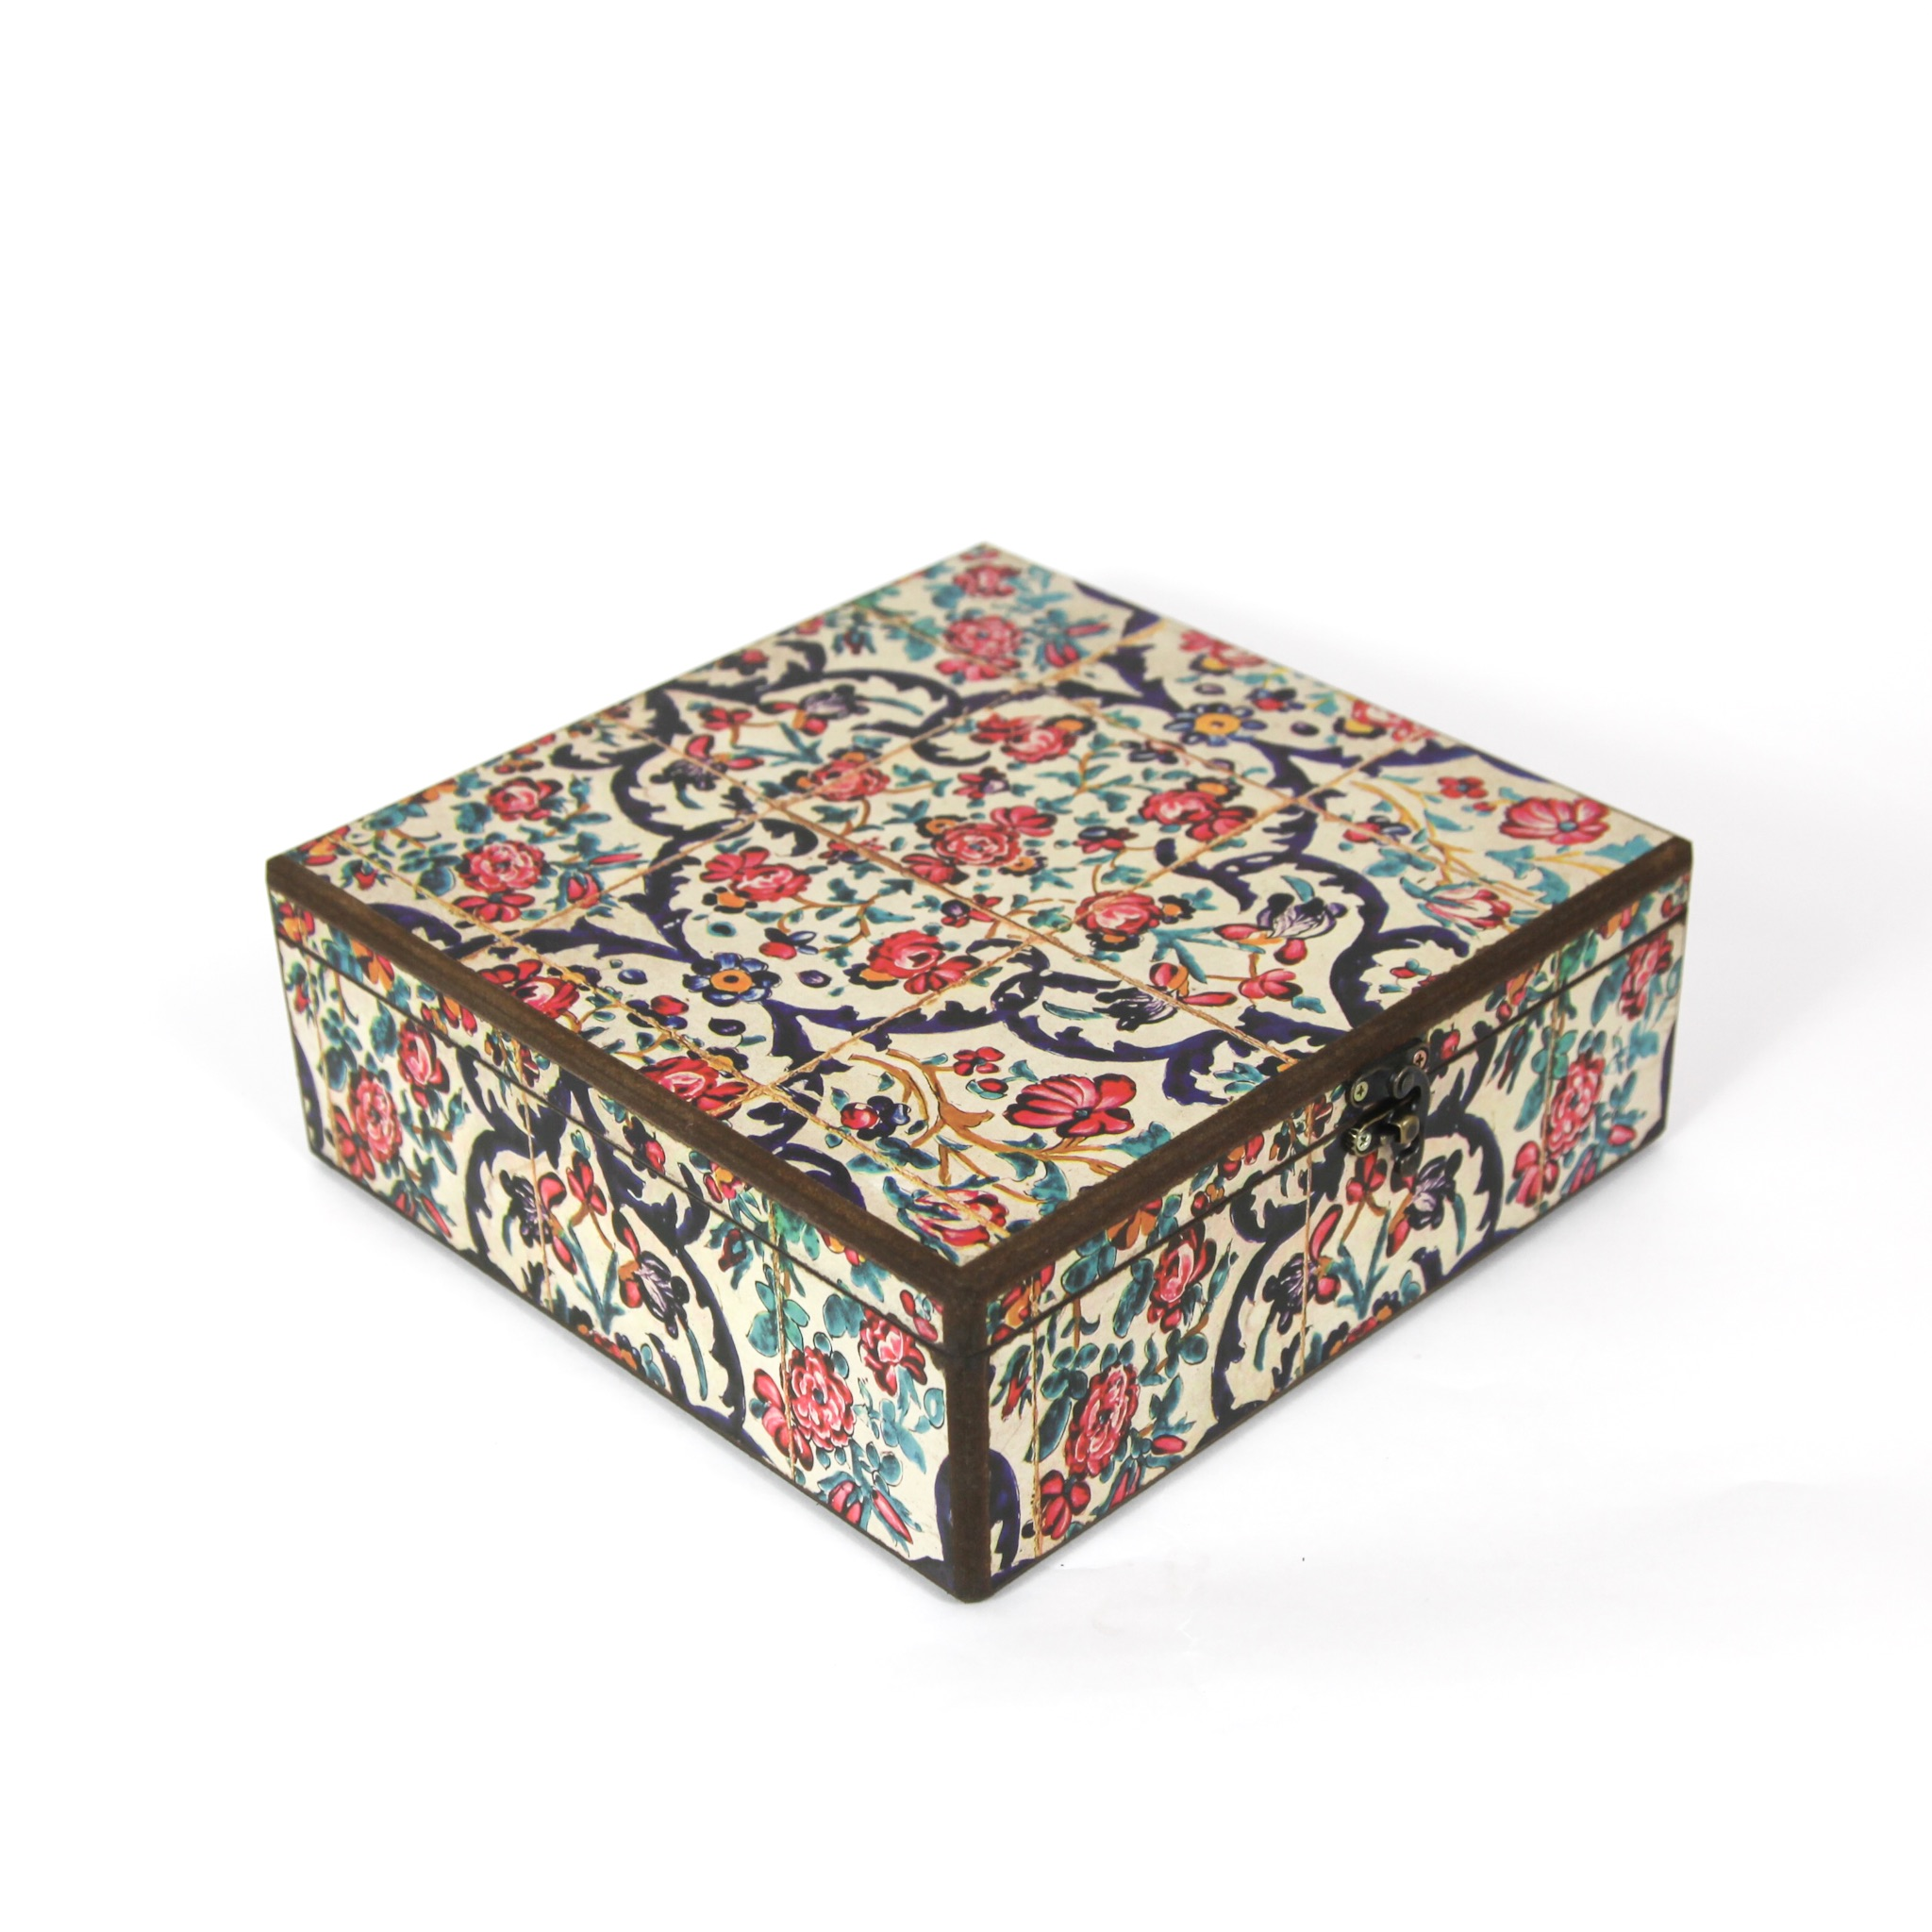 Wooden tea box with Iranian tile patterns code 05( available in 3 sizes)